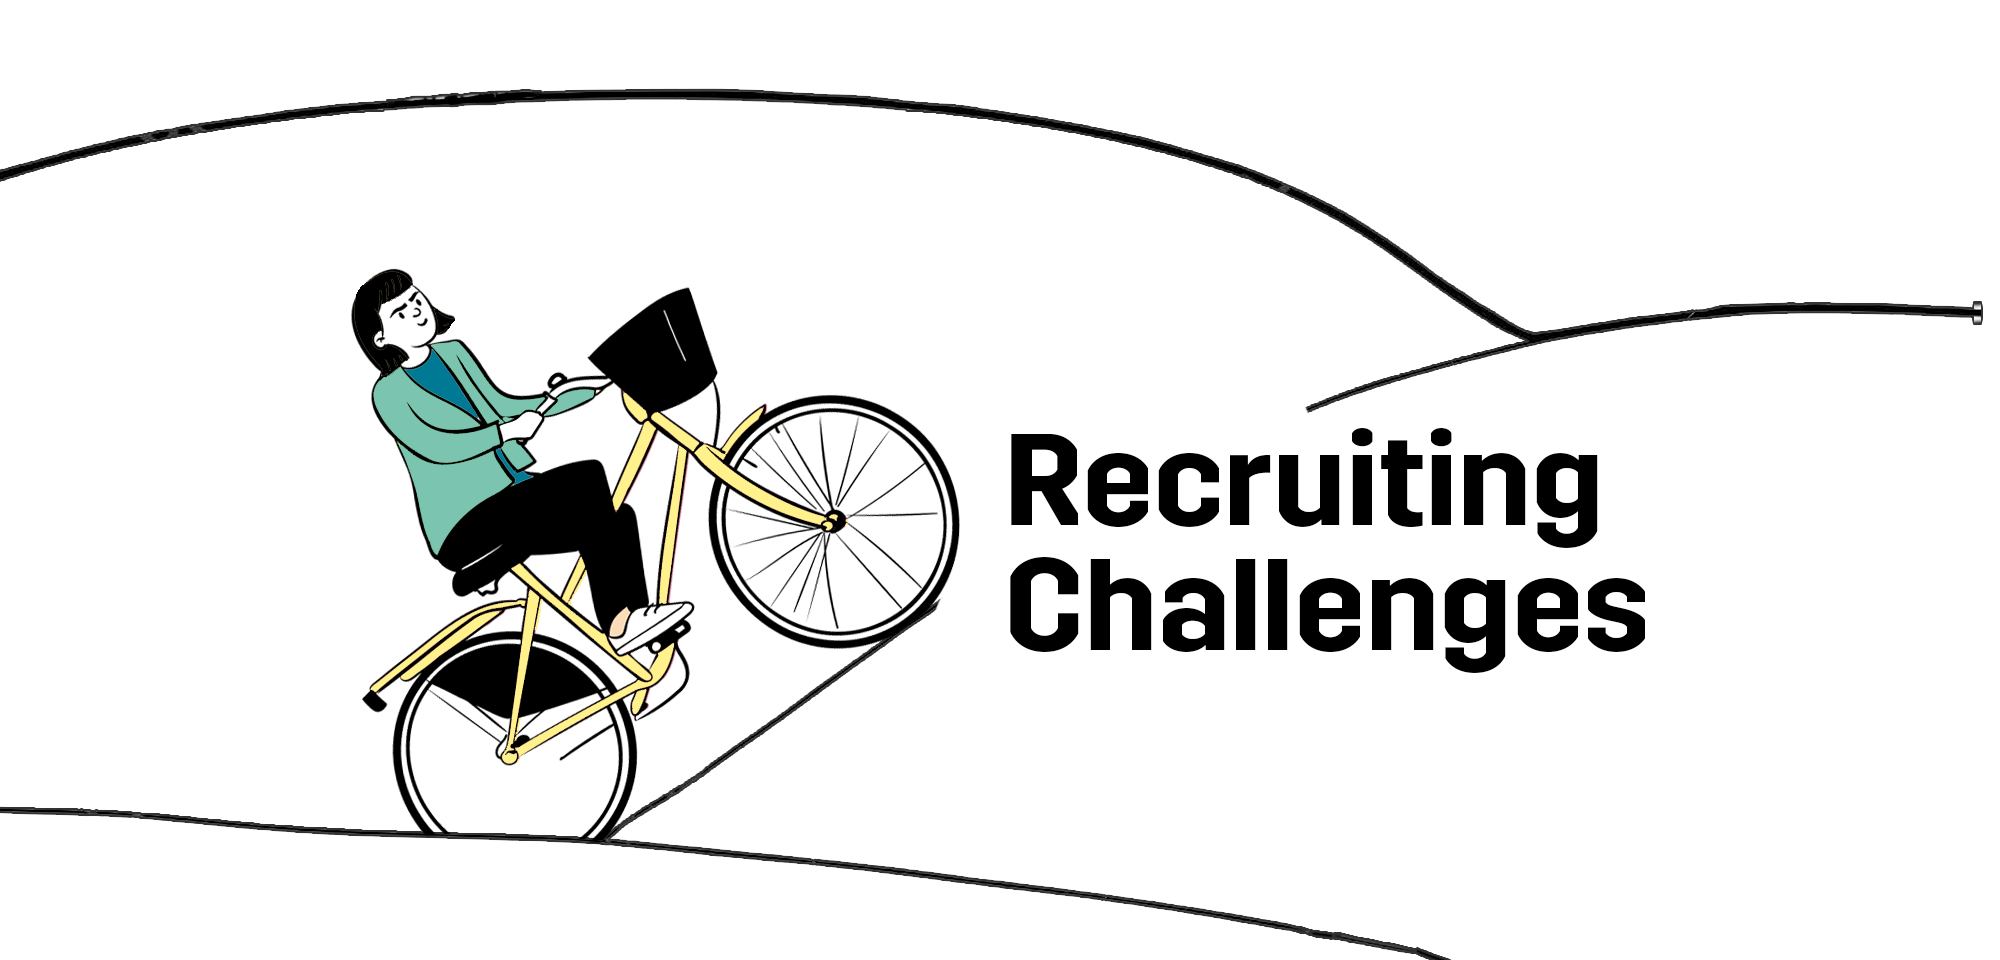 recruiting-challenges-illustration-woman-cycling-upphill